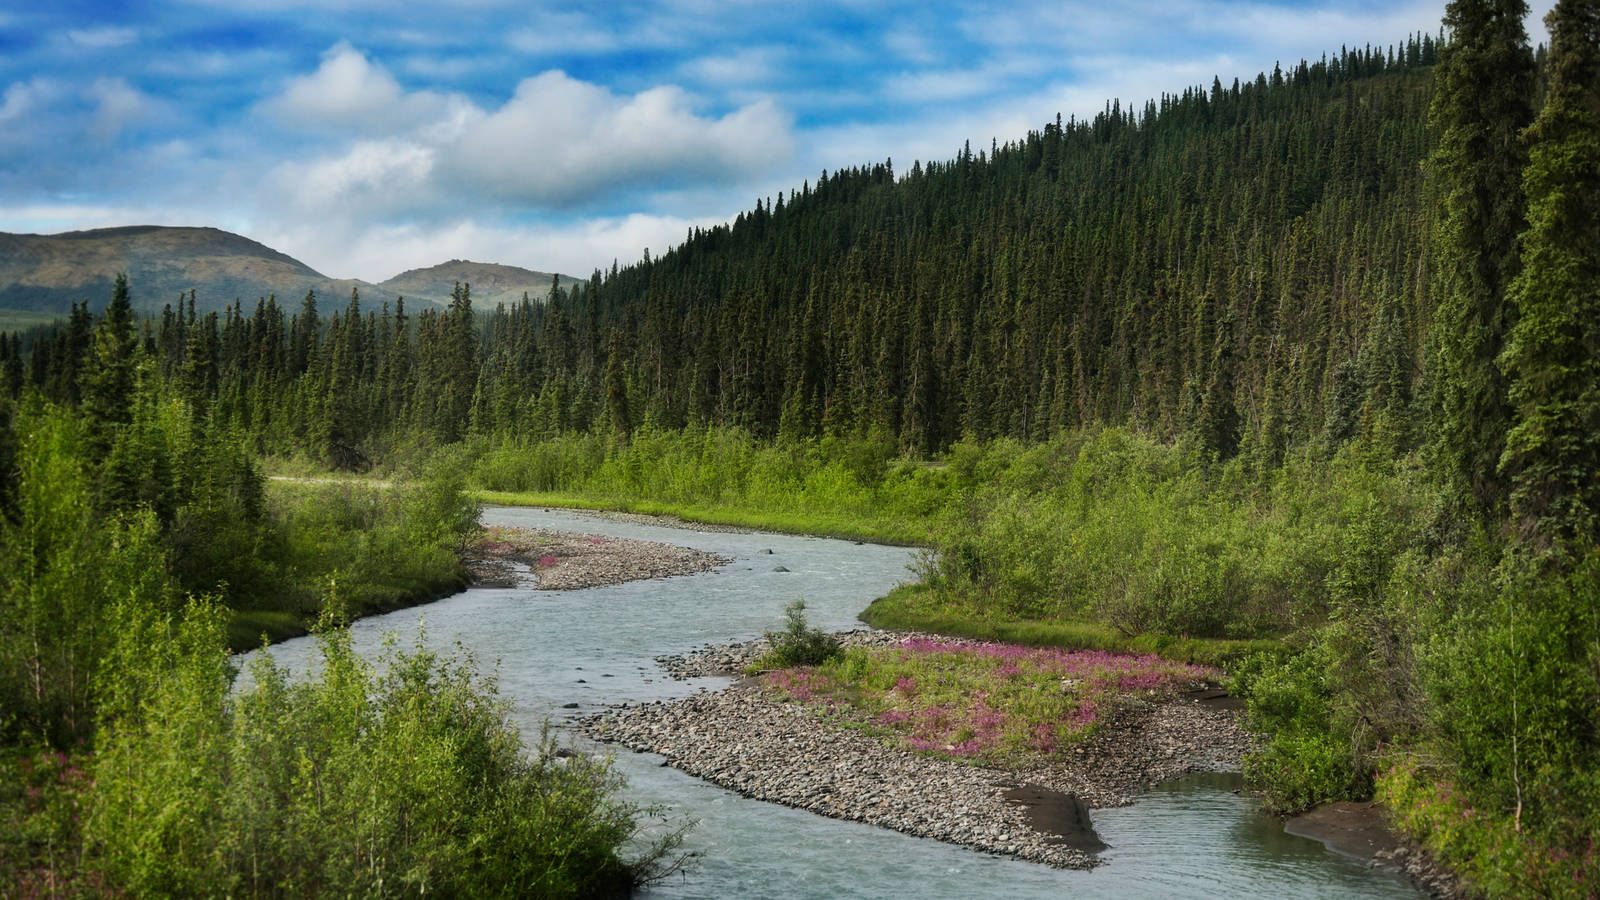 Working to Significantly Reduce Waste at National Parks